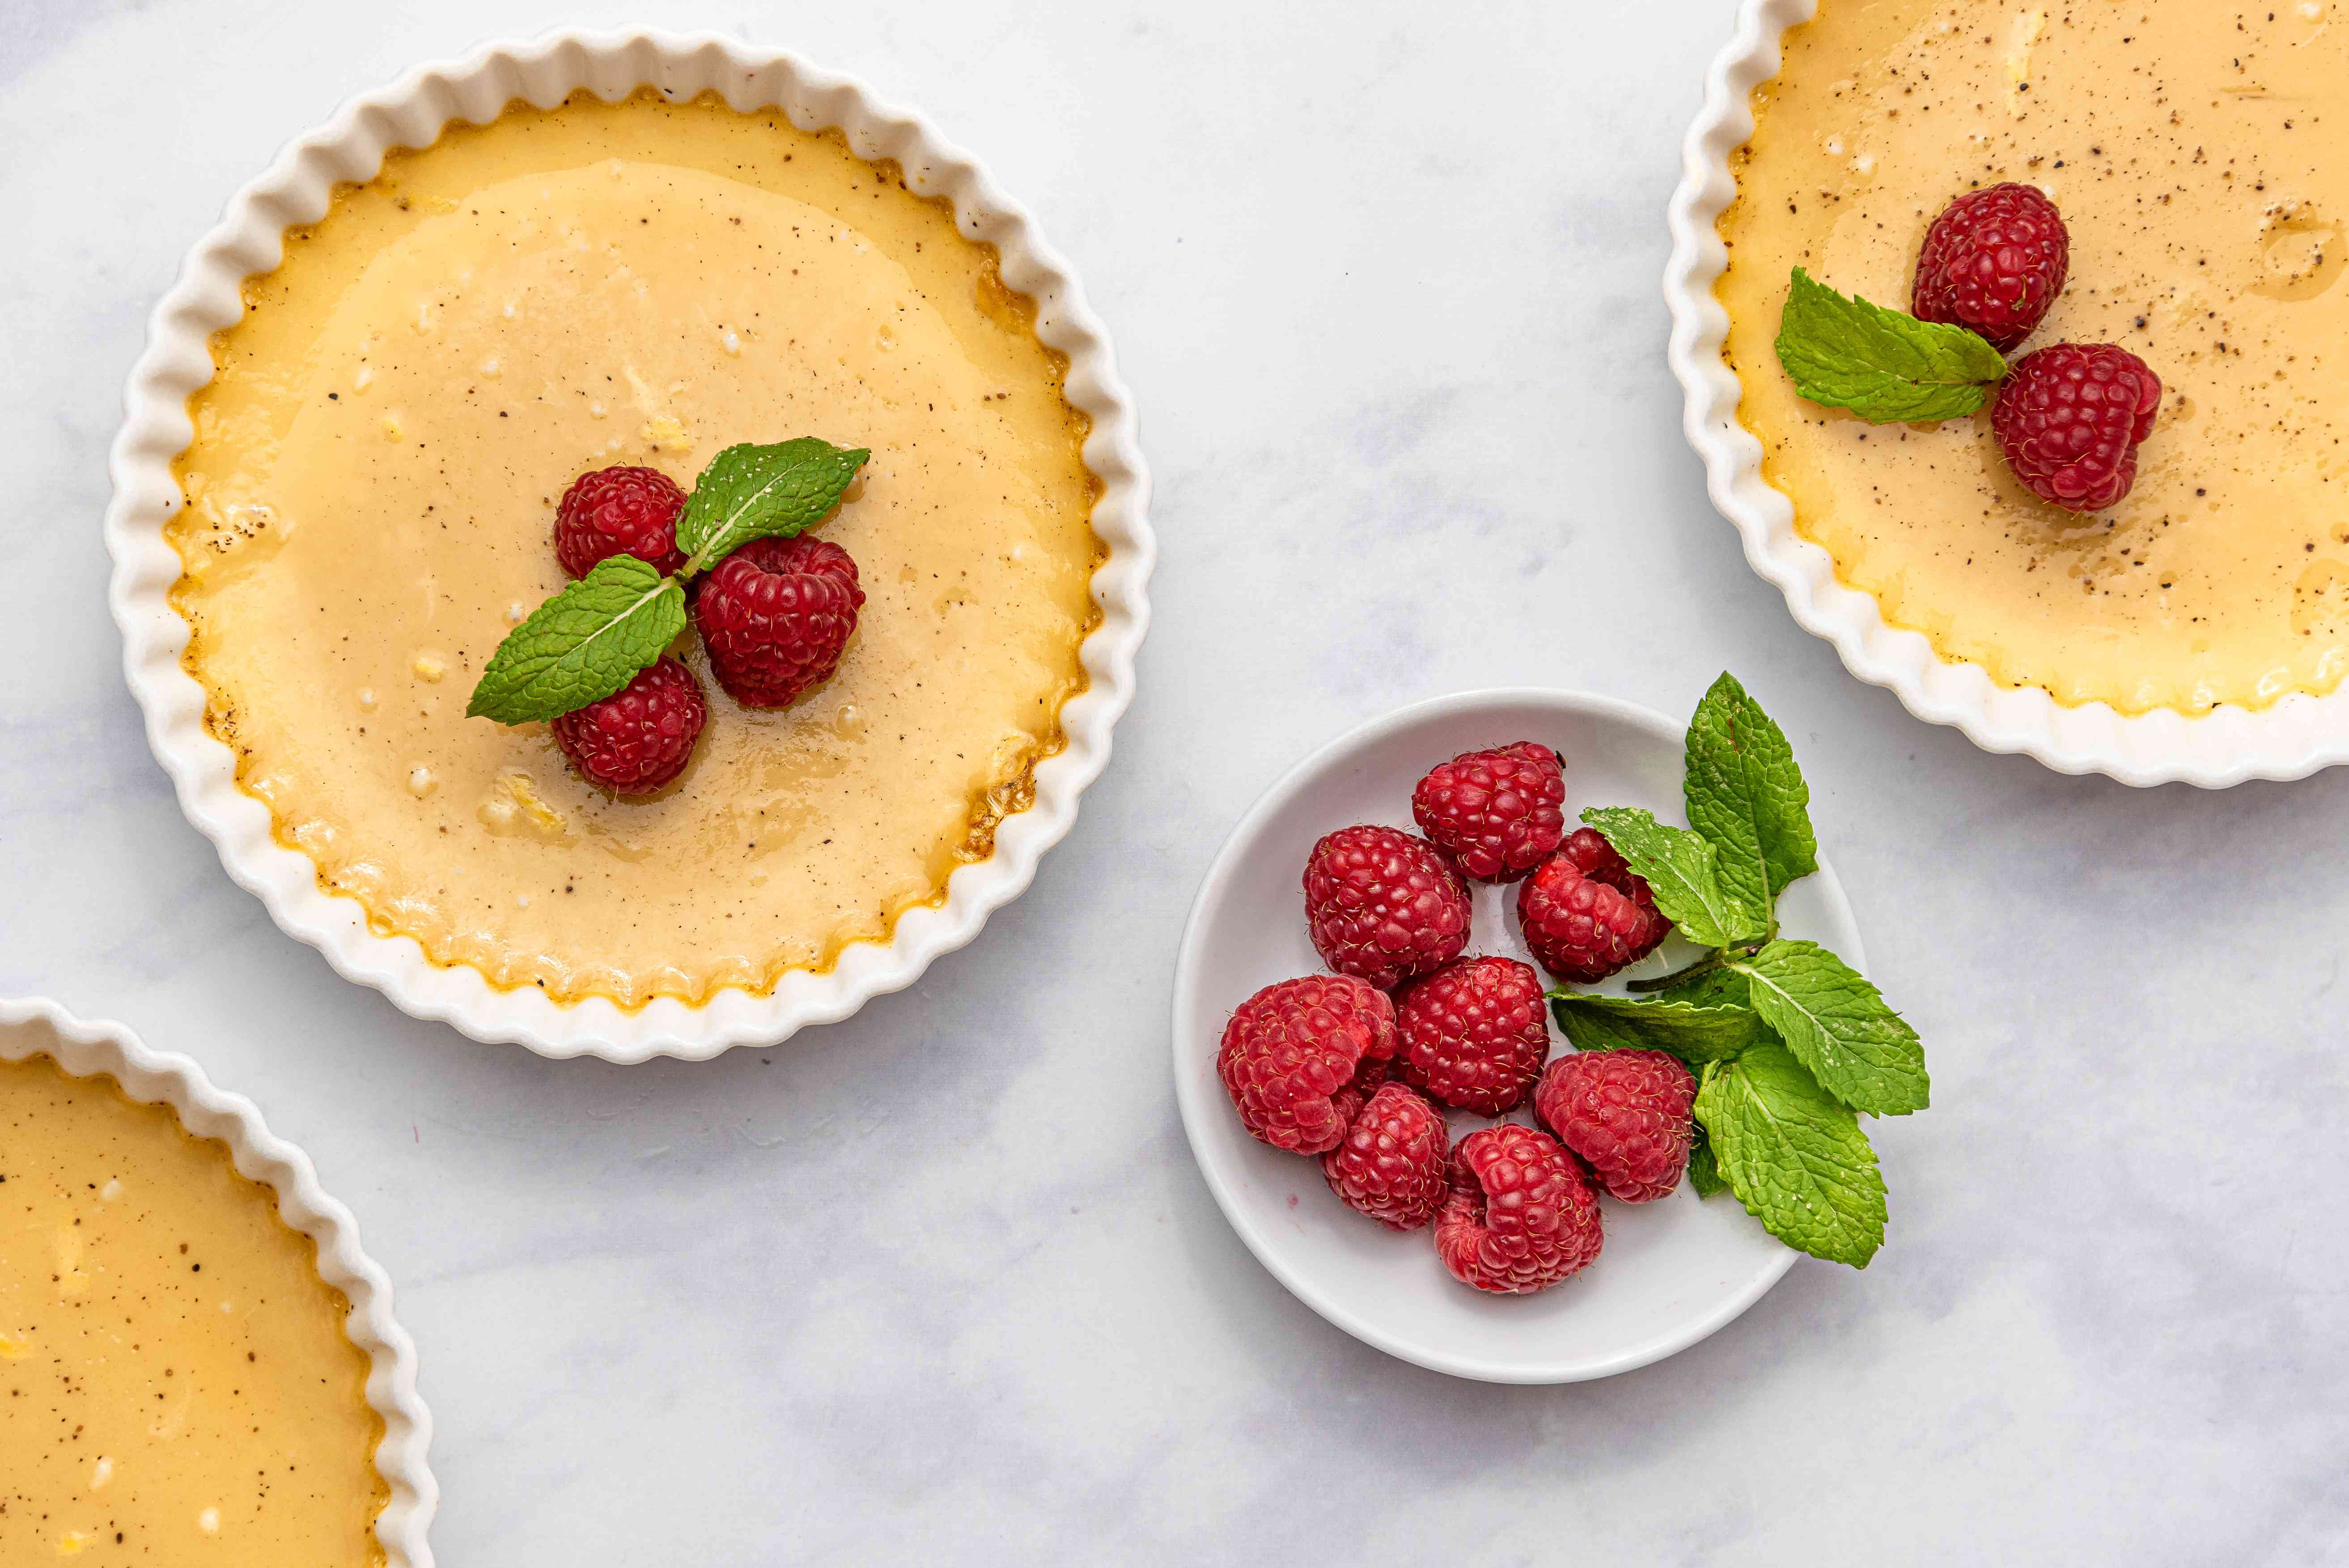 Baked Custard topped with nutmeg and raspberries